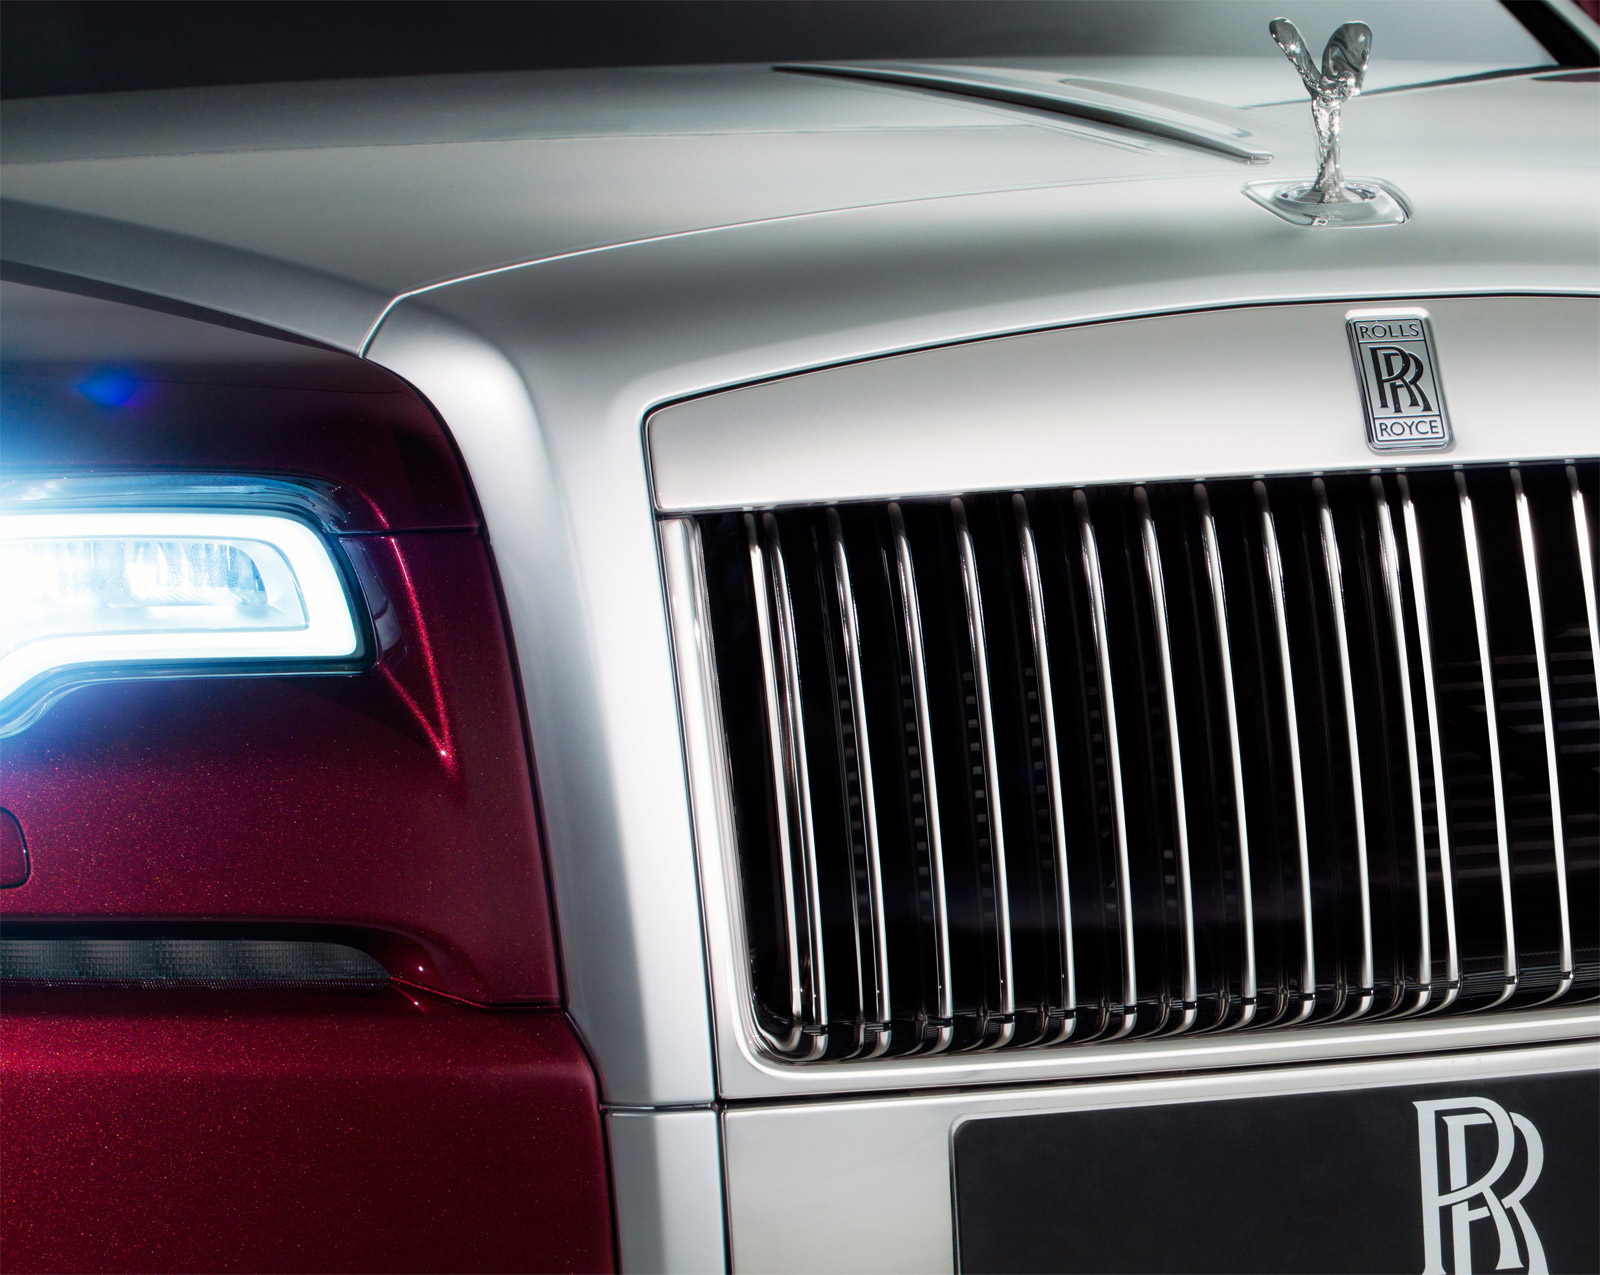 Rolls Royce Just Teased The Don Of Driverless Cars recommend